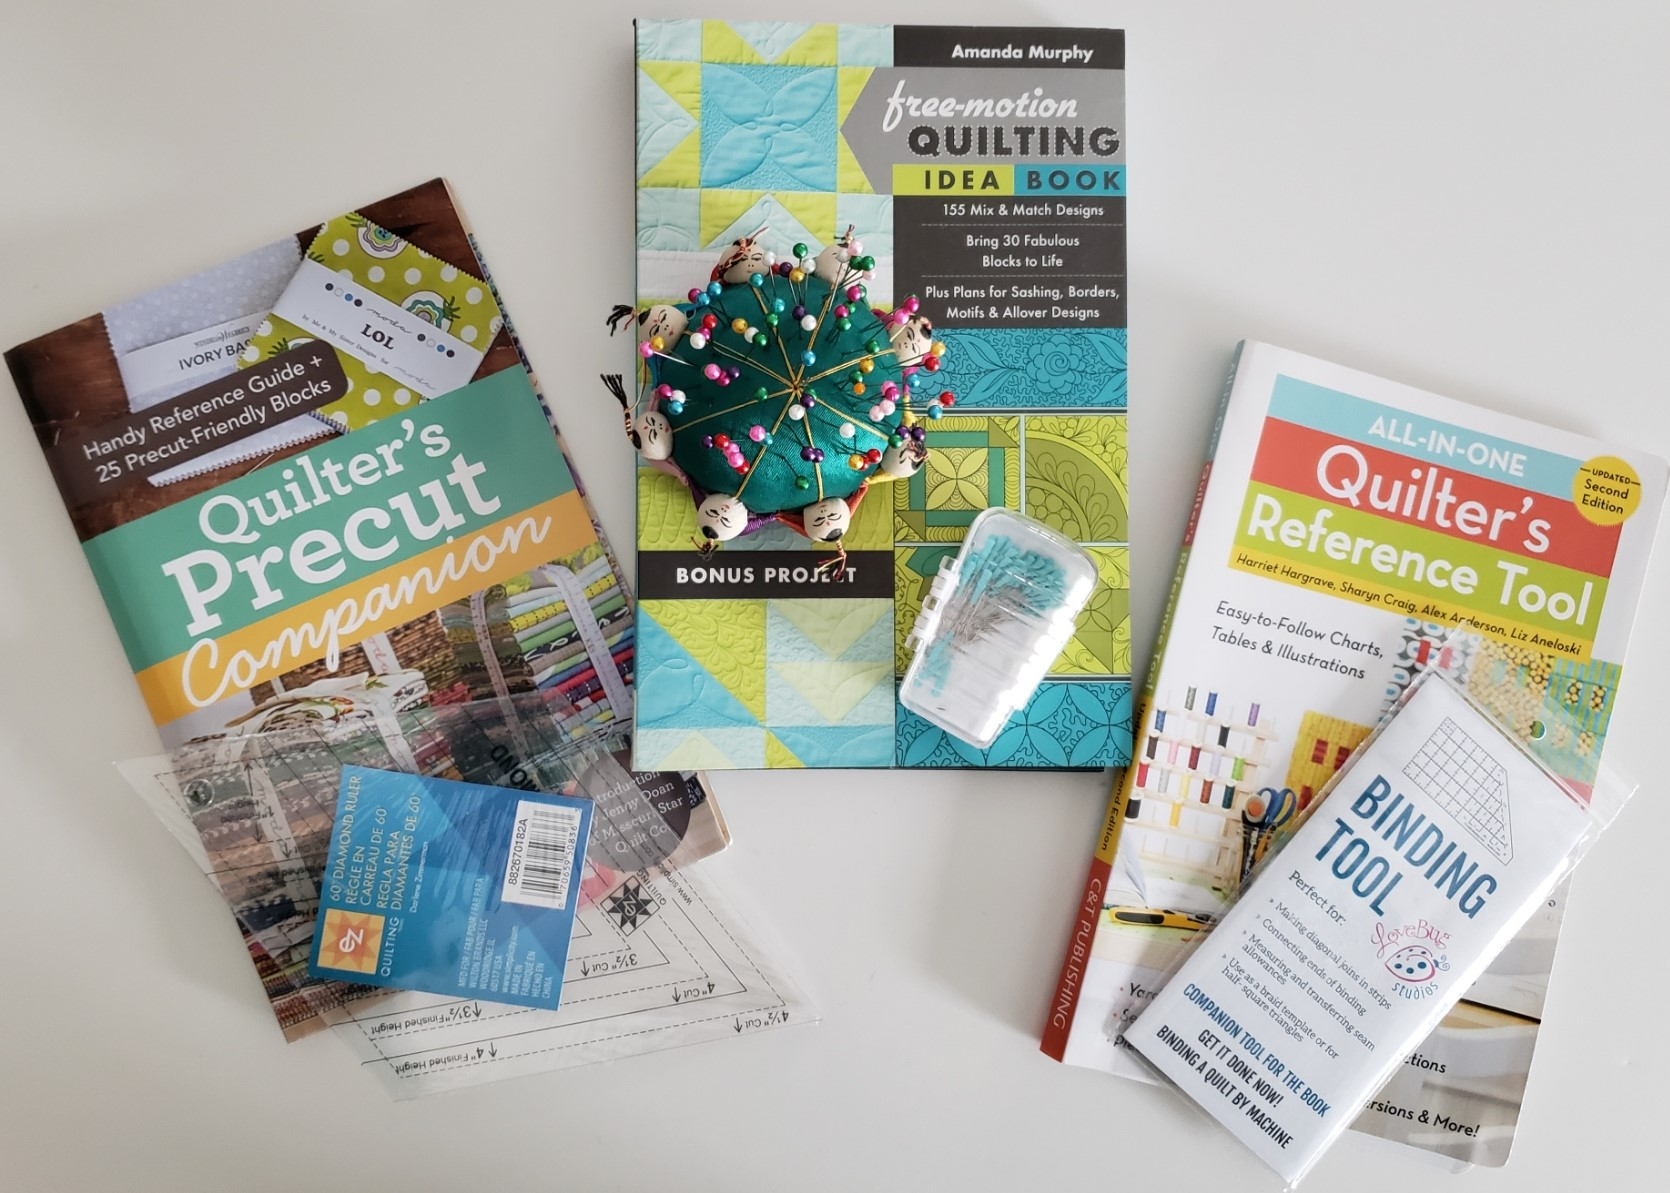 Gift Ideas for Quilters: Quilt Reference Books & More